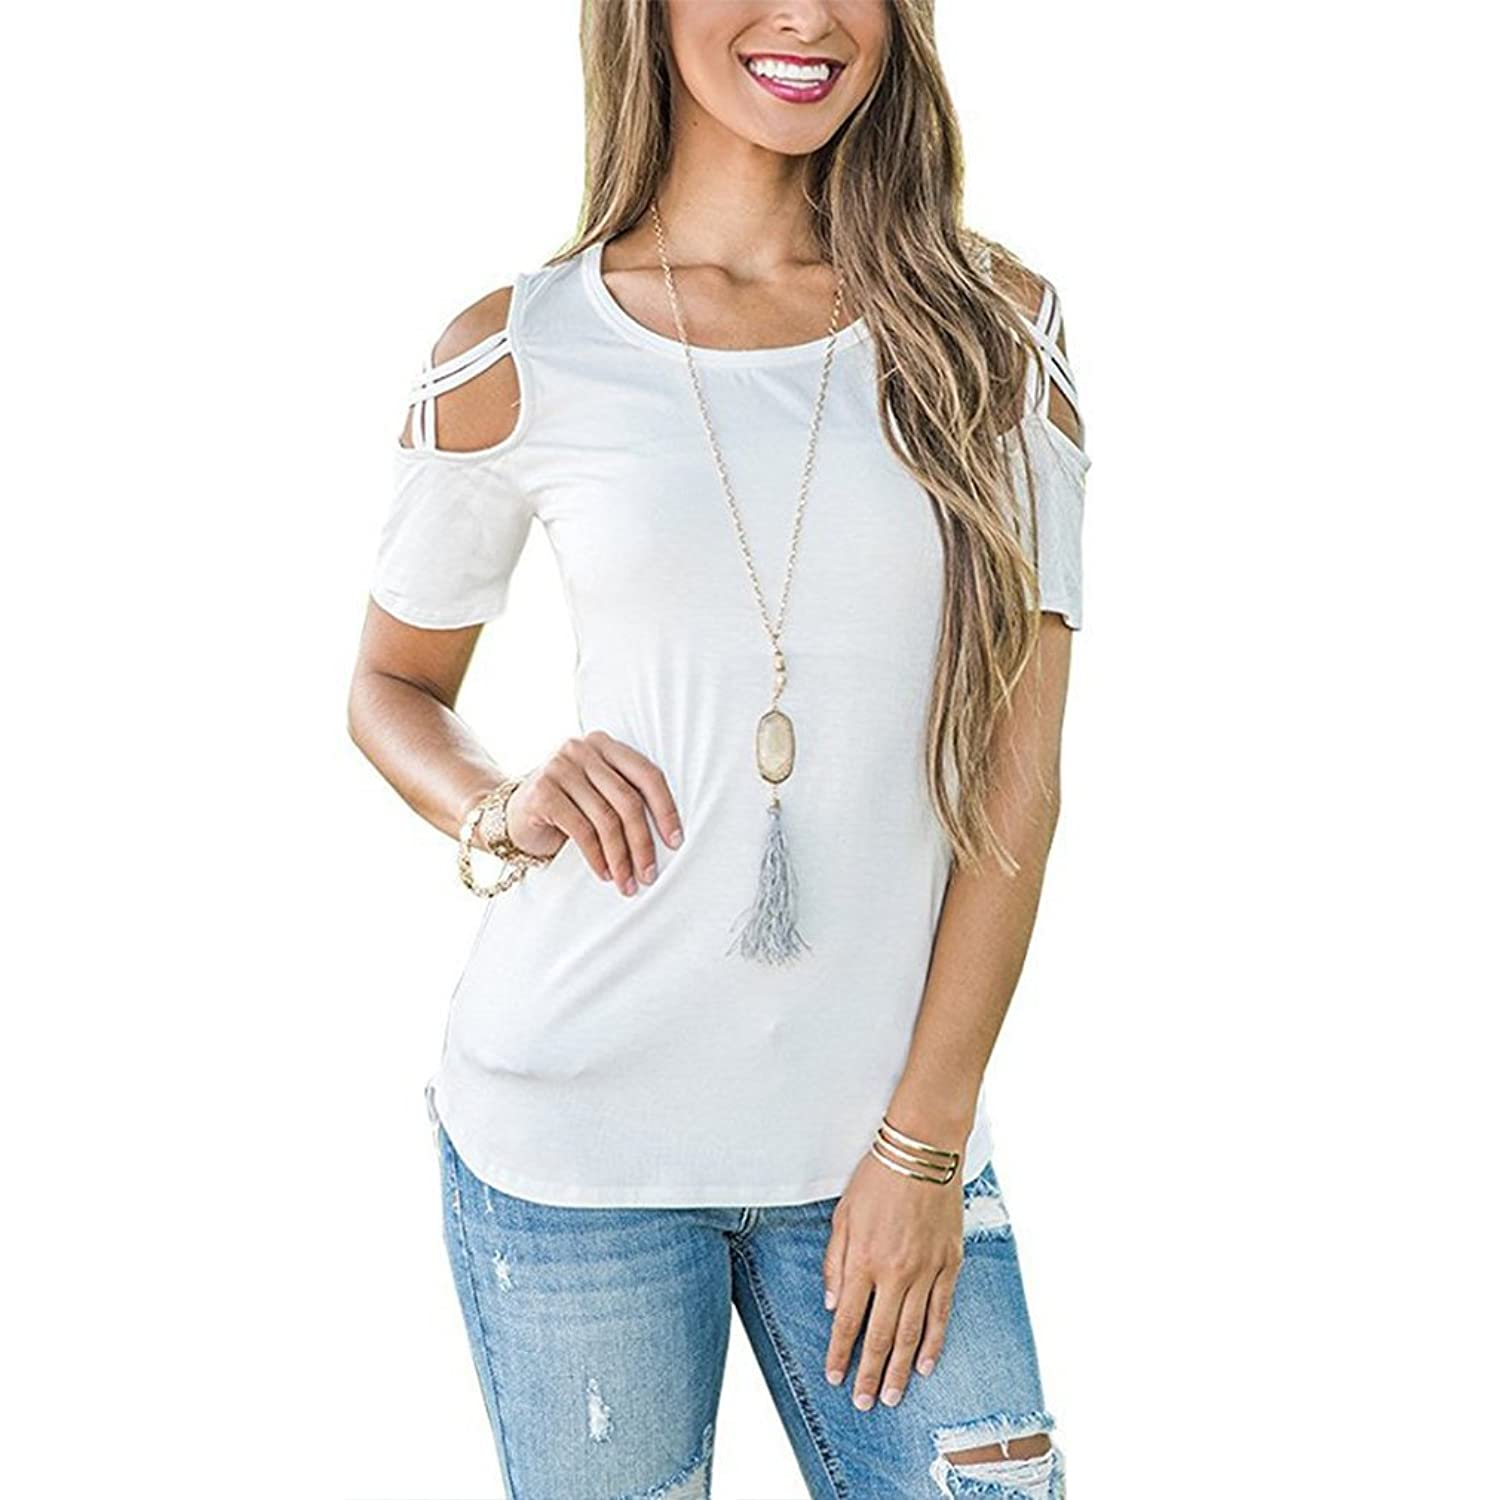 930a6839c62f4 Summer Short Sleeve Strappy Cold Shoulder T-Shirt Tops Blouses Unique look  of this short sleeve top features cold shoulder cutouts, strappy details  within ...